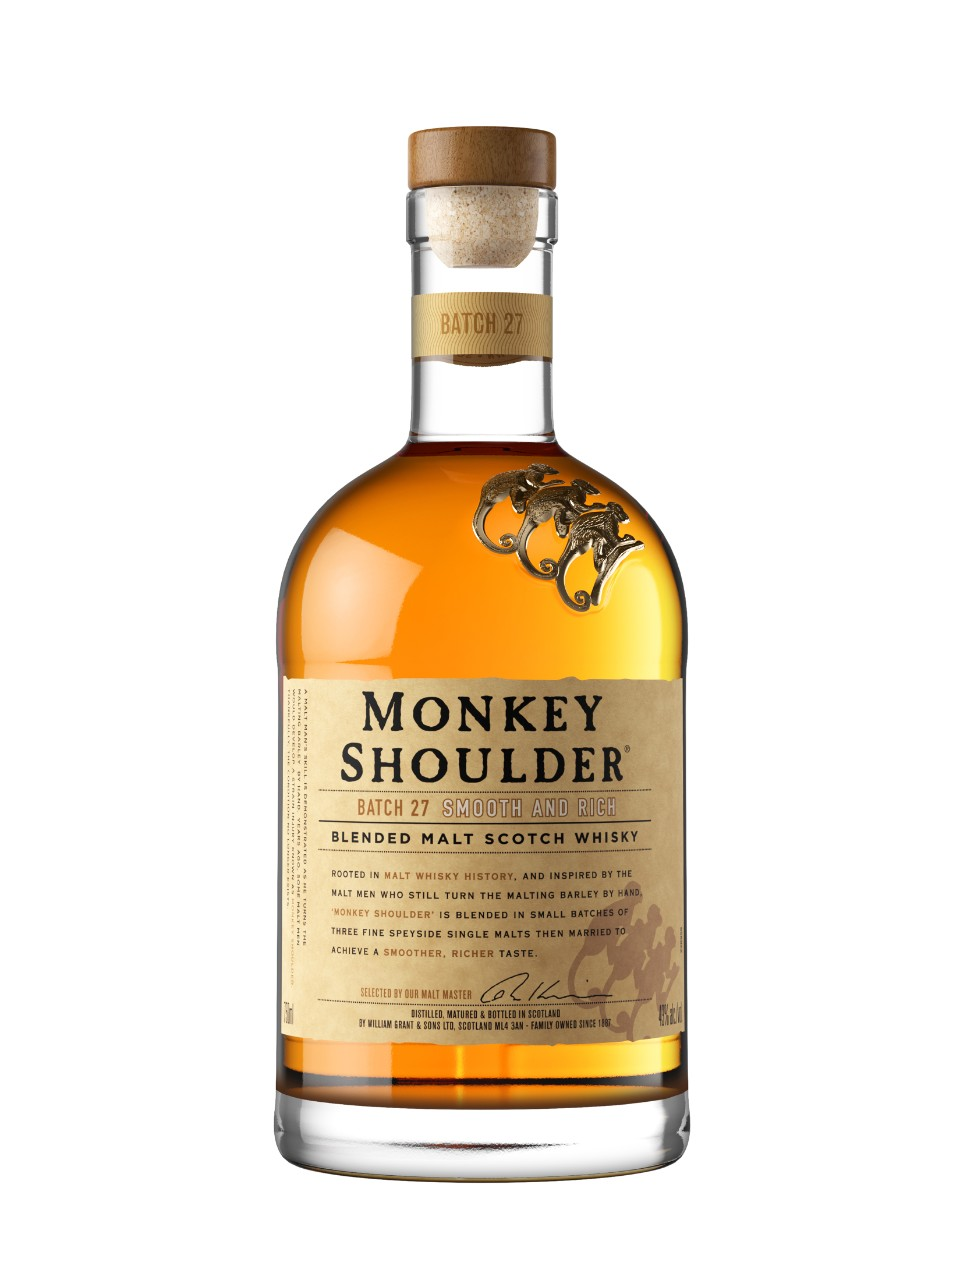 Monkey Shoulder Blended Malt Scotch Whisky from LCBO